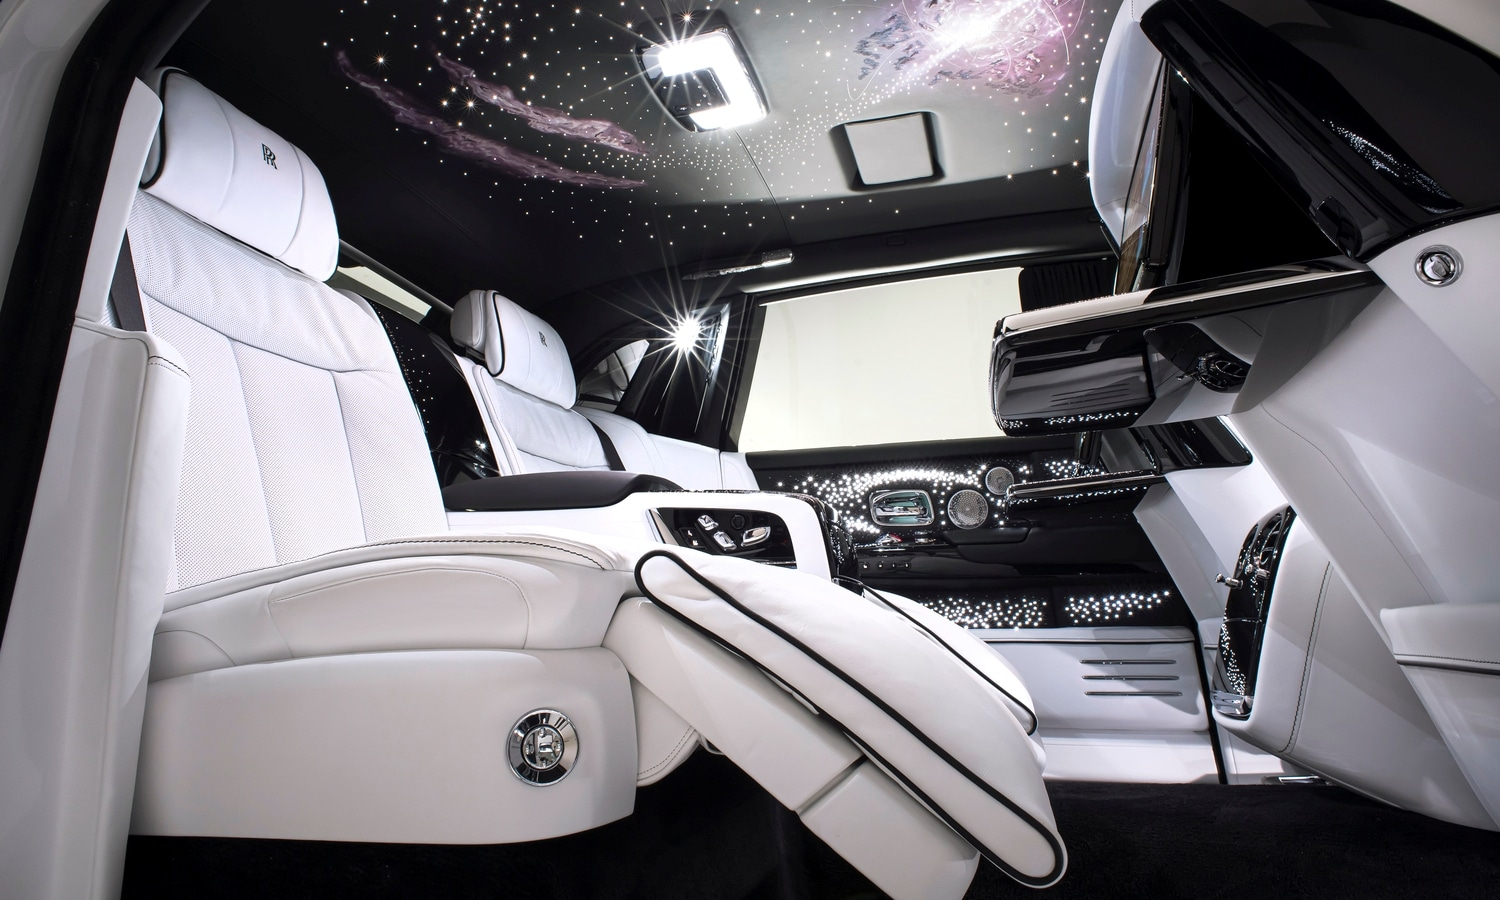 Rolls Royce Phantom Tempus Collection debuts in North America, Marking a special moment in time